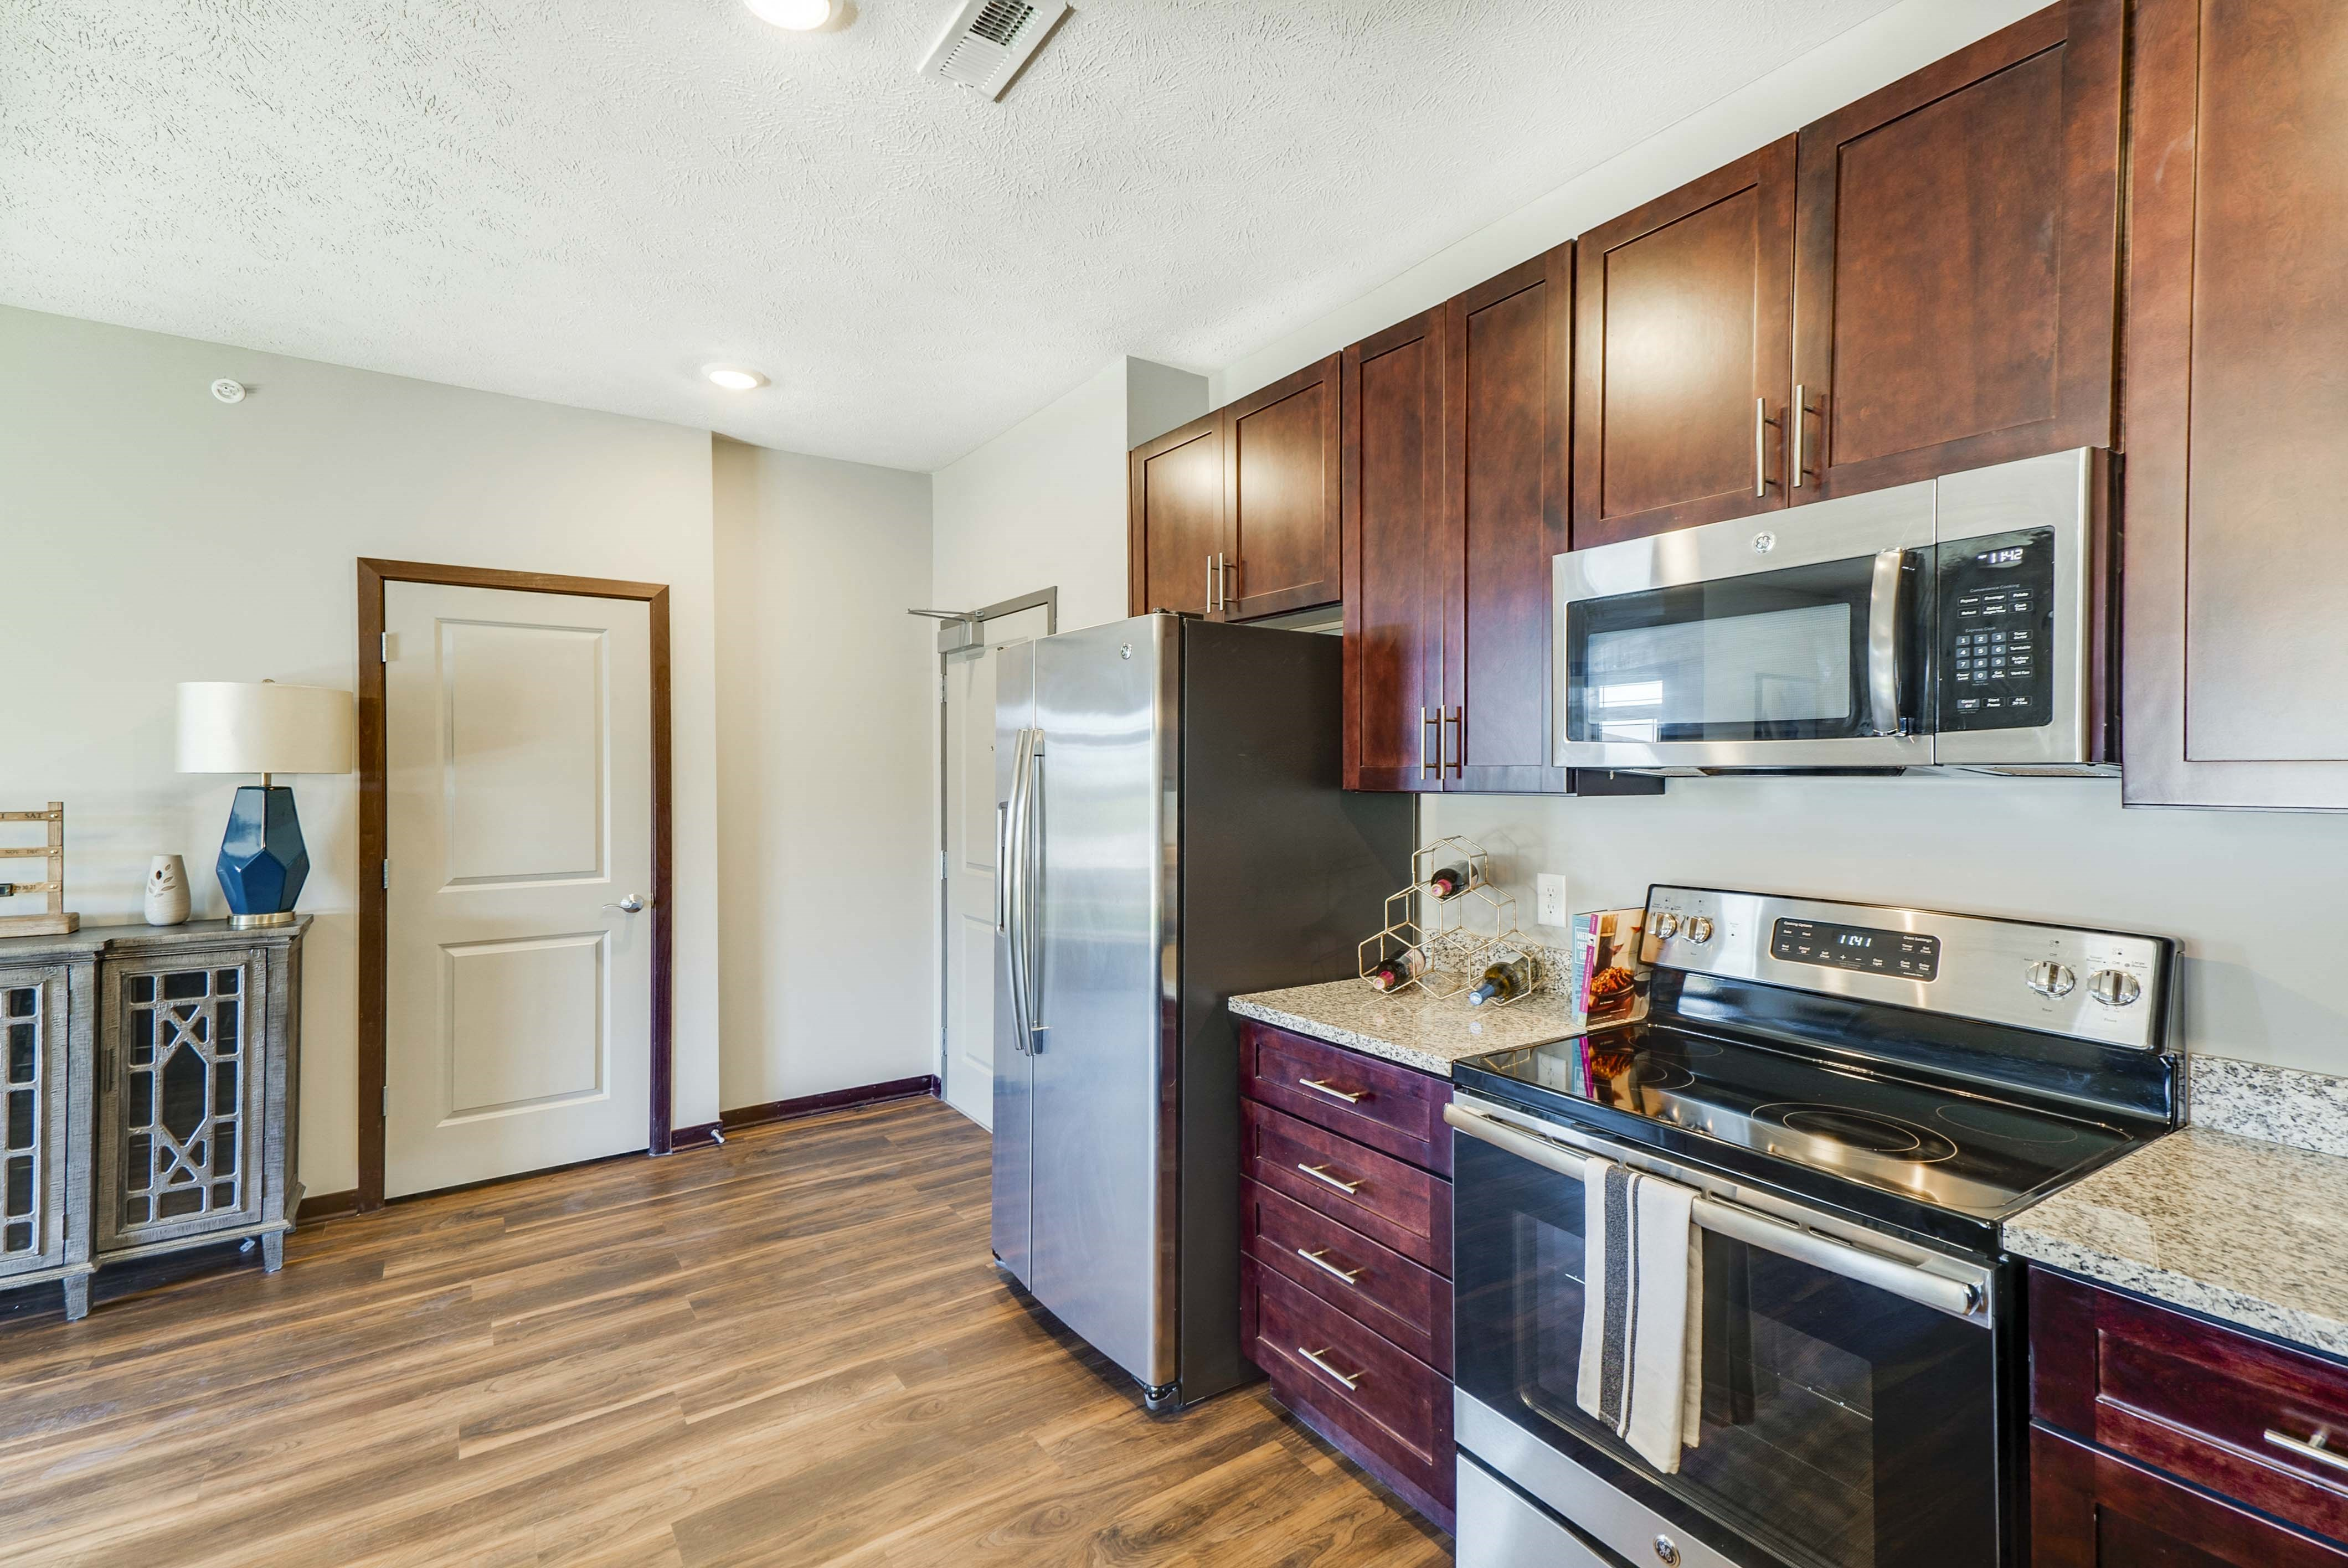 Spacious kitchen with granite countertops of 2 bedroom apartment for rent at 360 at Jordan West best new apartments West Des Moines IA 50266